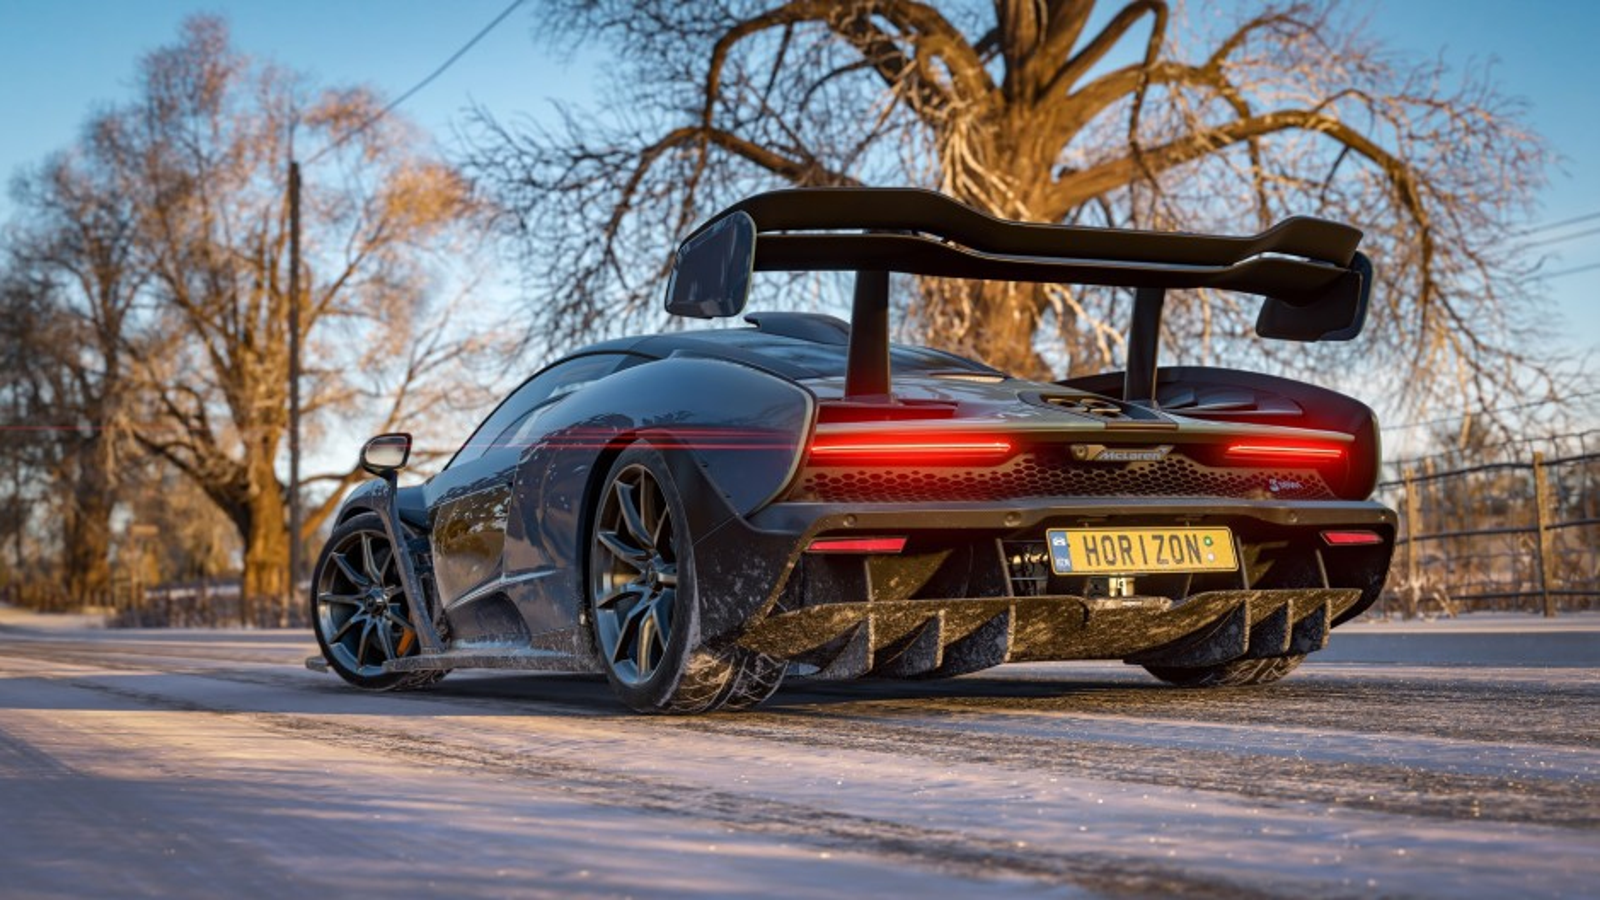 Forza Horizon 4's British Setting Makes It Feel Like Racing In A Witcher Game